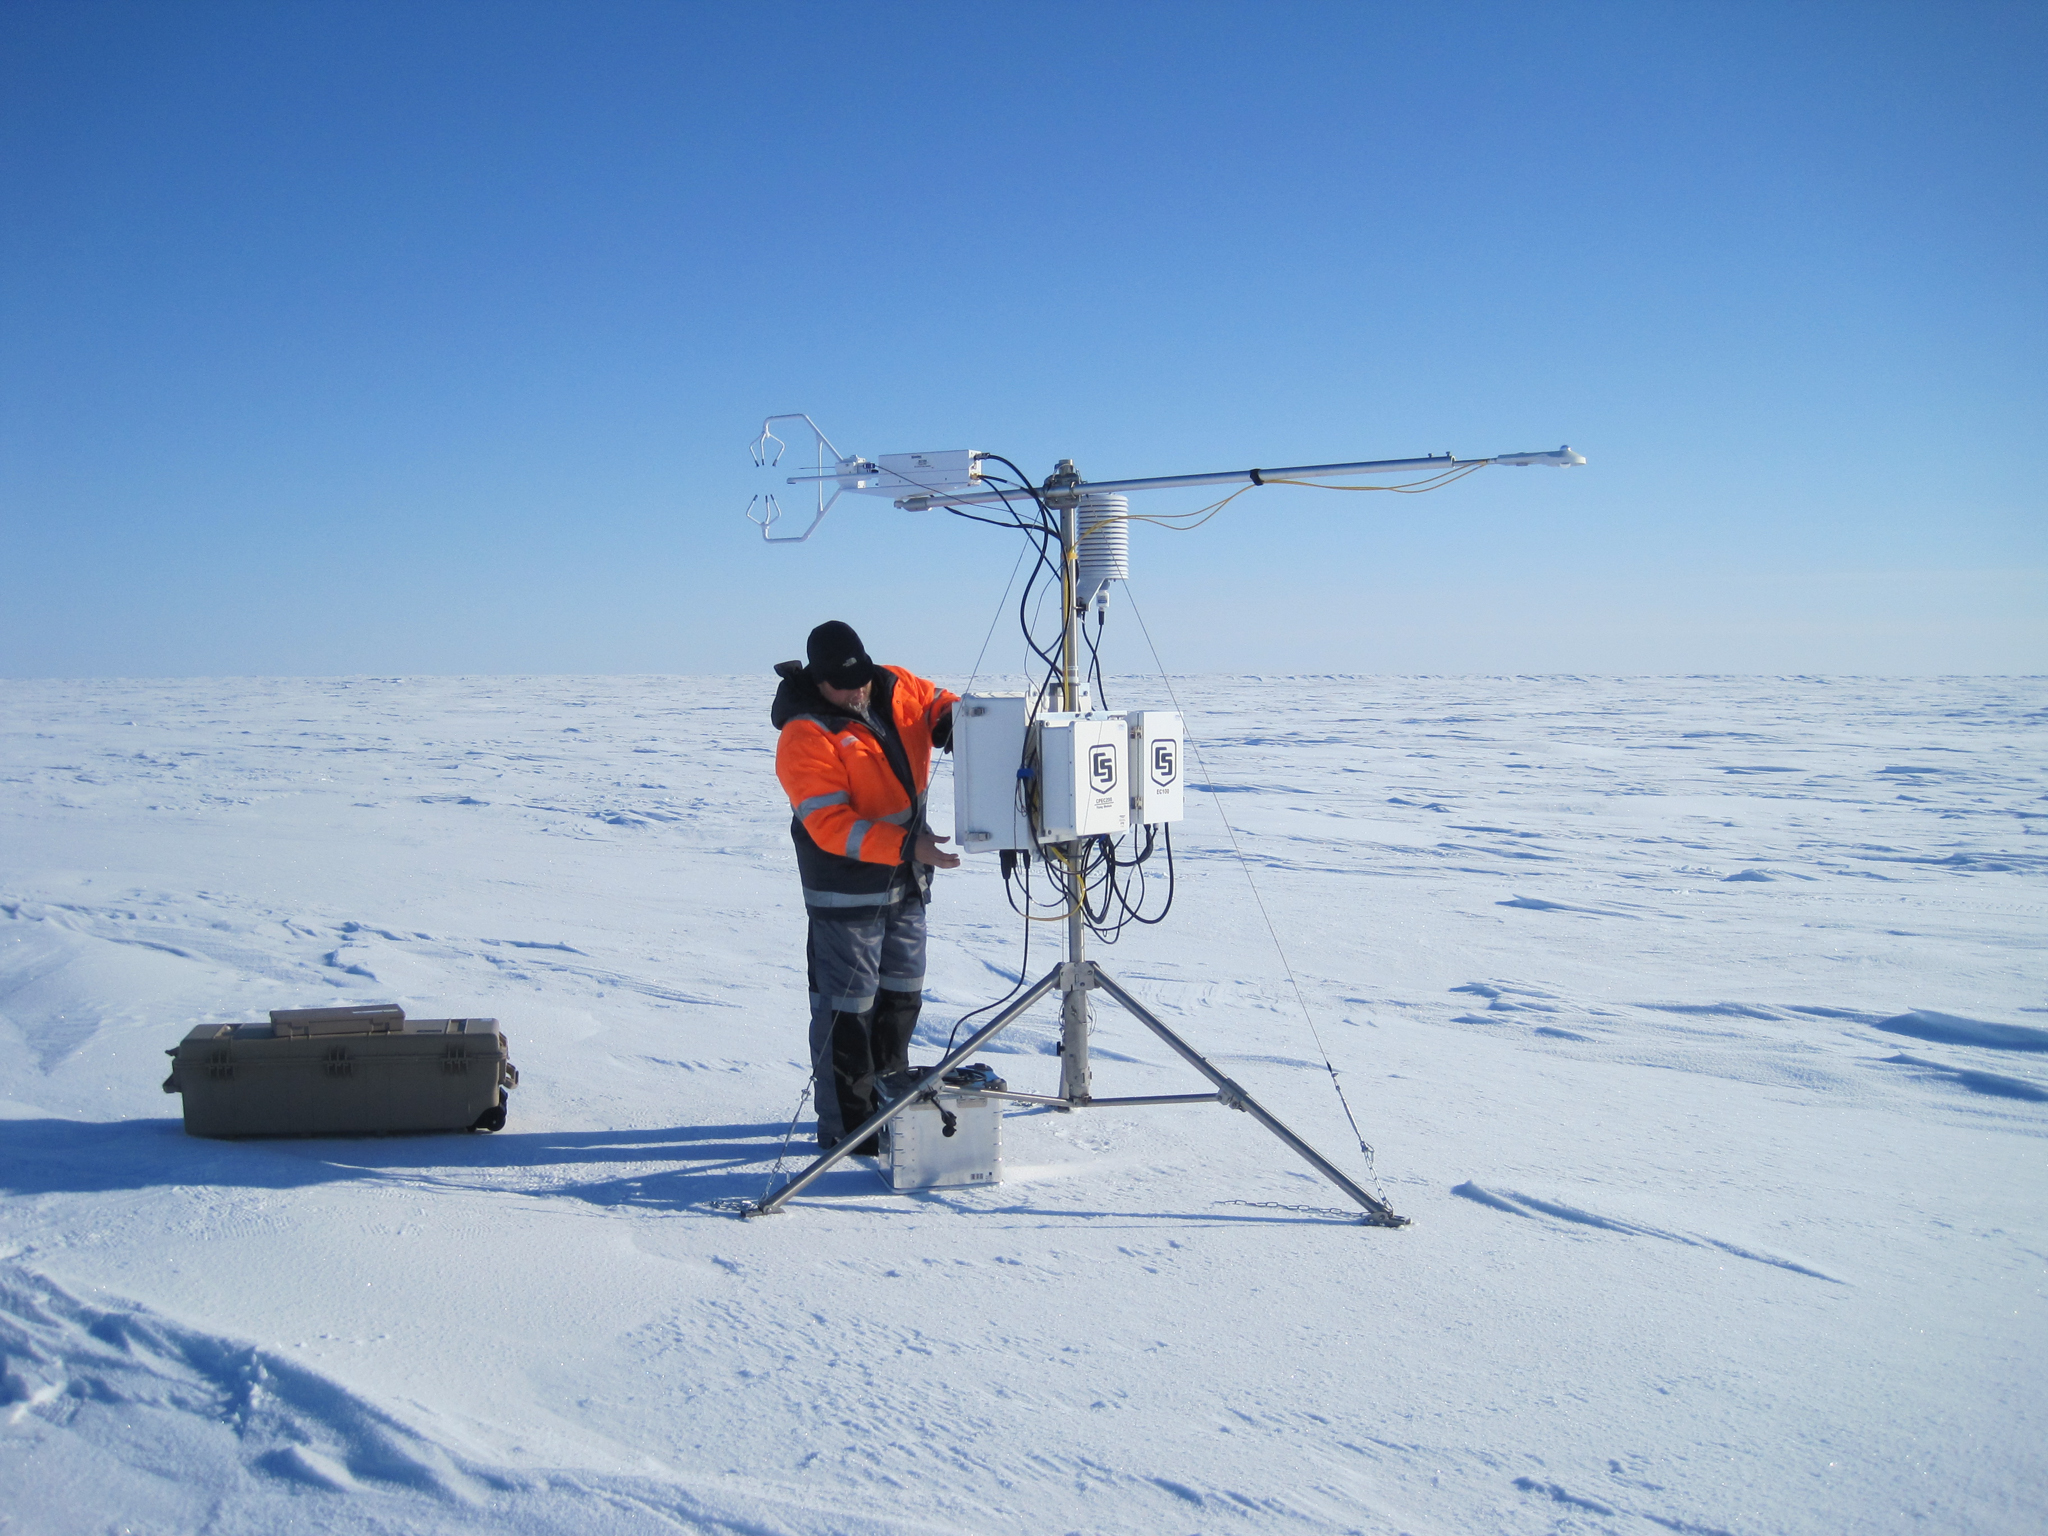 A researcher makes final adjustments to an instrument that takes measurements of wind and temperature 20 times per second—helping scientists understand the atmosphere's effects on sea ice. Photograph by Mats Granskog/Stephen Hudson, Norwegian Polar Institute